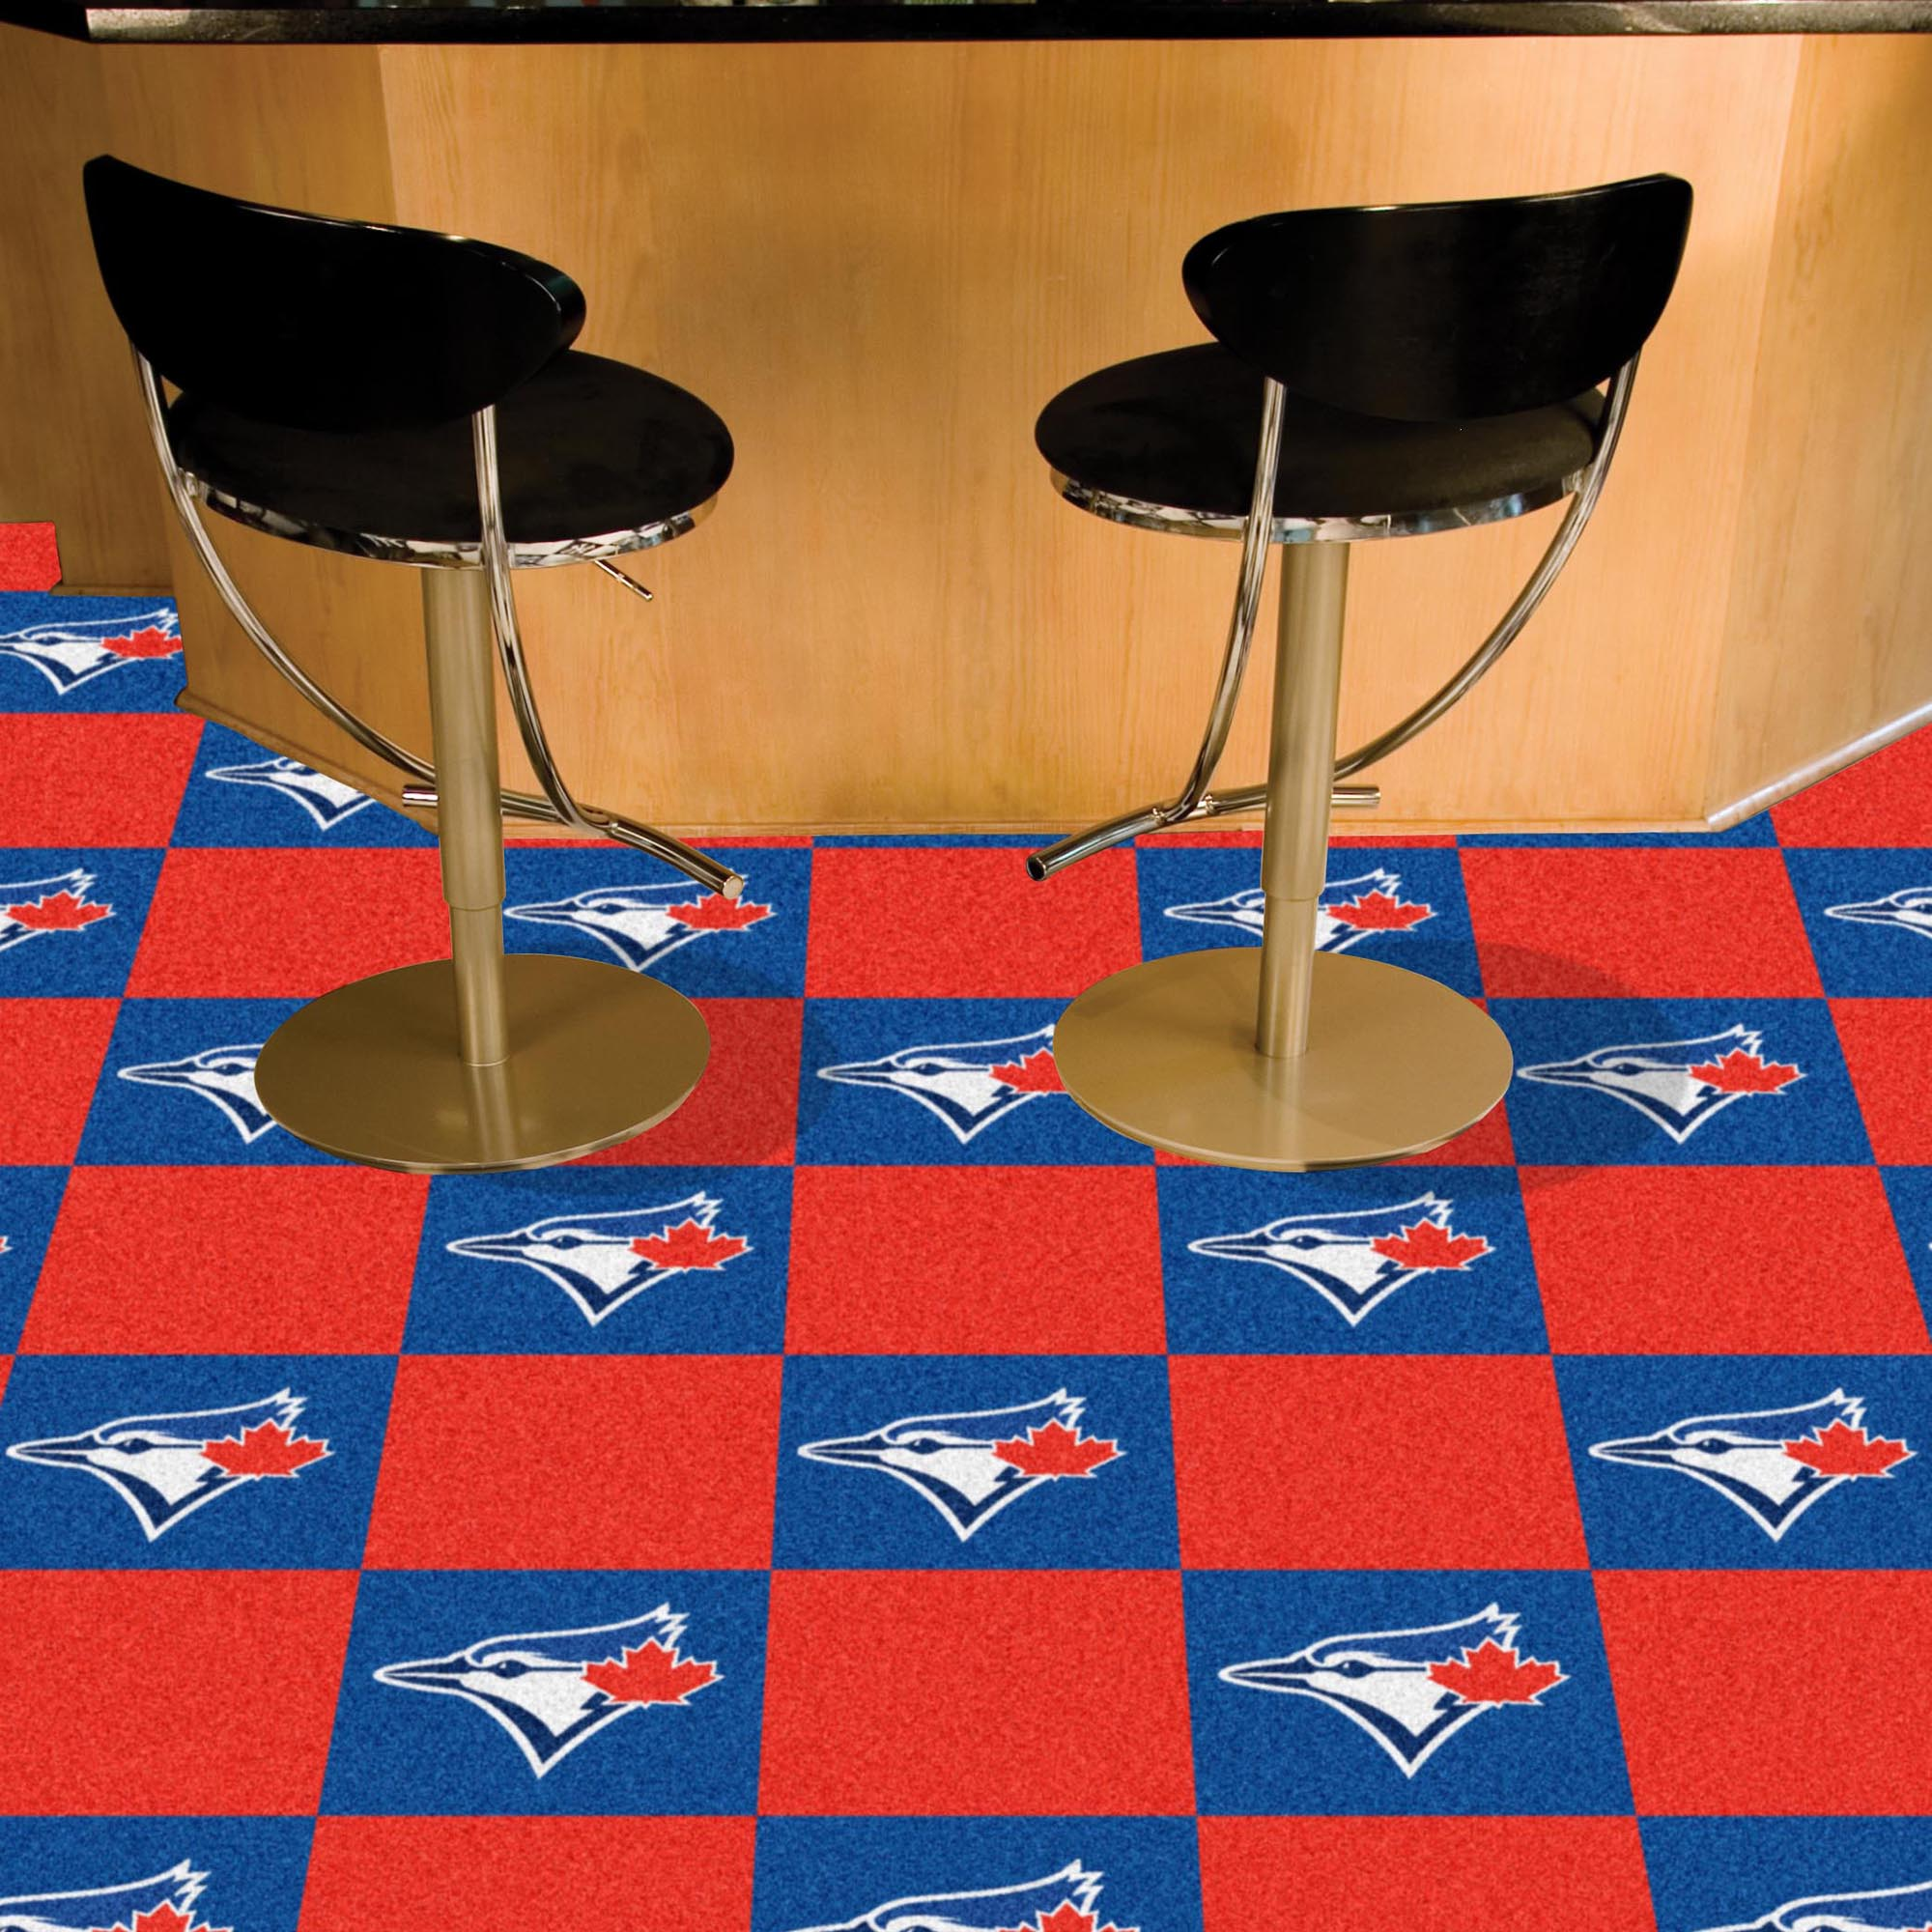 Toronto Blue Jays Carpet Tiles 18x18 in.